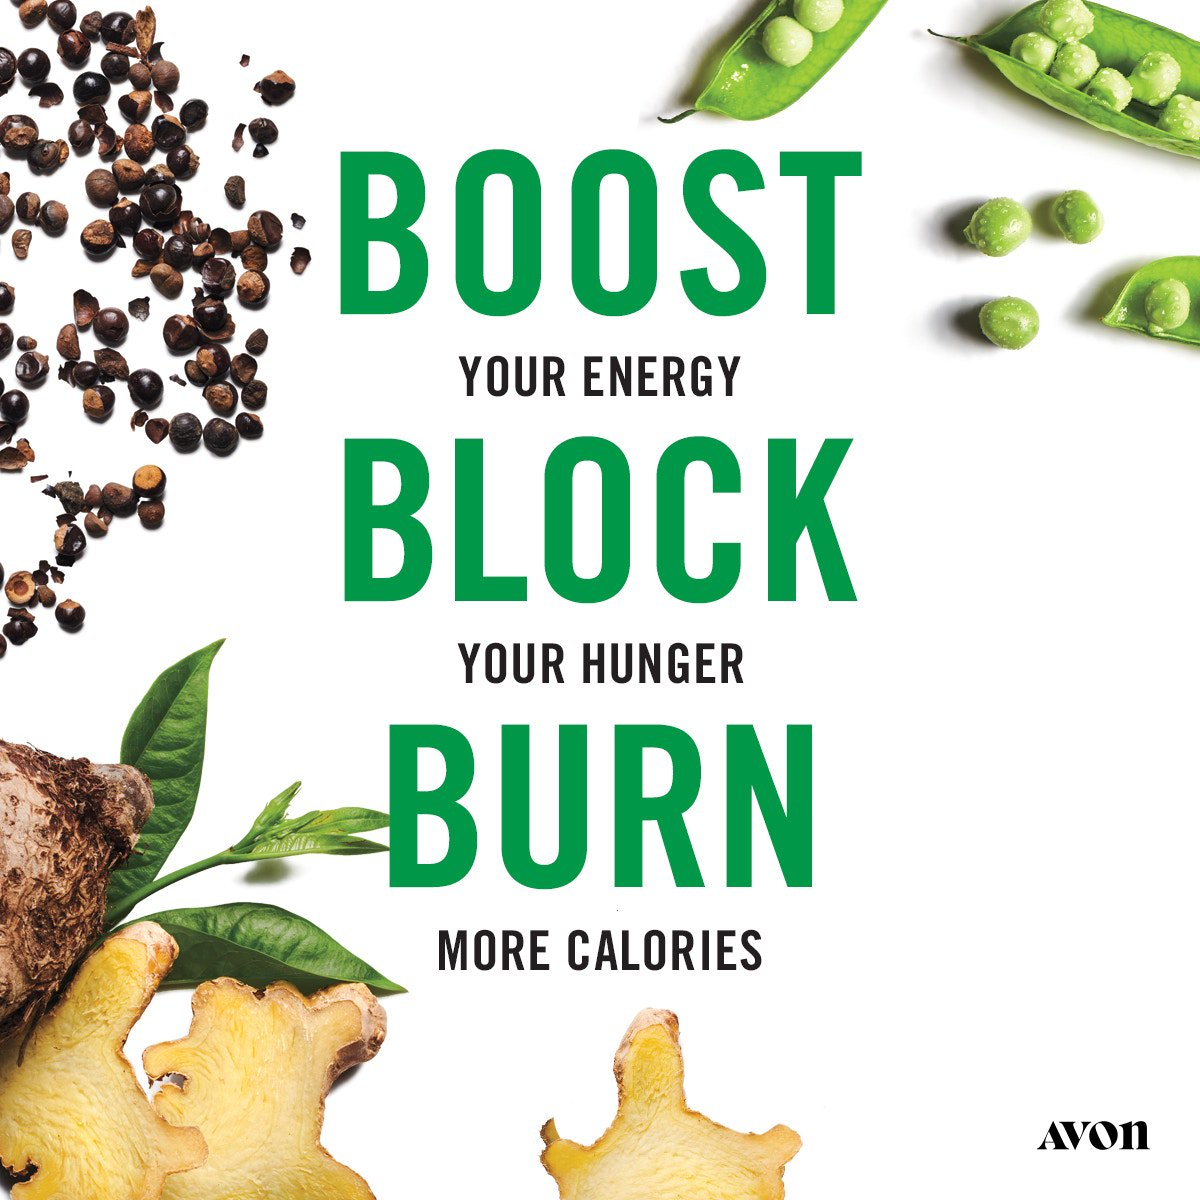 A healthier, revitalized you in 30 days. https://www.avon.com/?s=ShopTab&rep=lorihoward&utm_medium=rep&c=MB_Twitter&utm_source=MB_Twitter … #plantbased #metabolism #healthyliving #fitness #avonrep